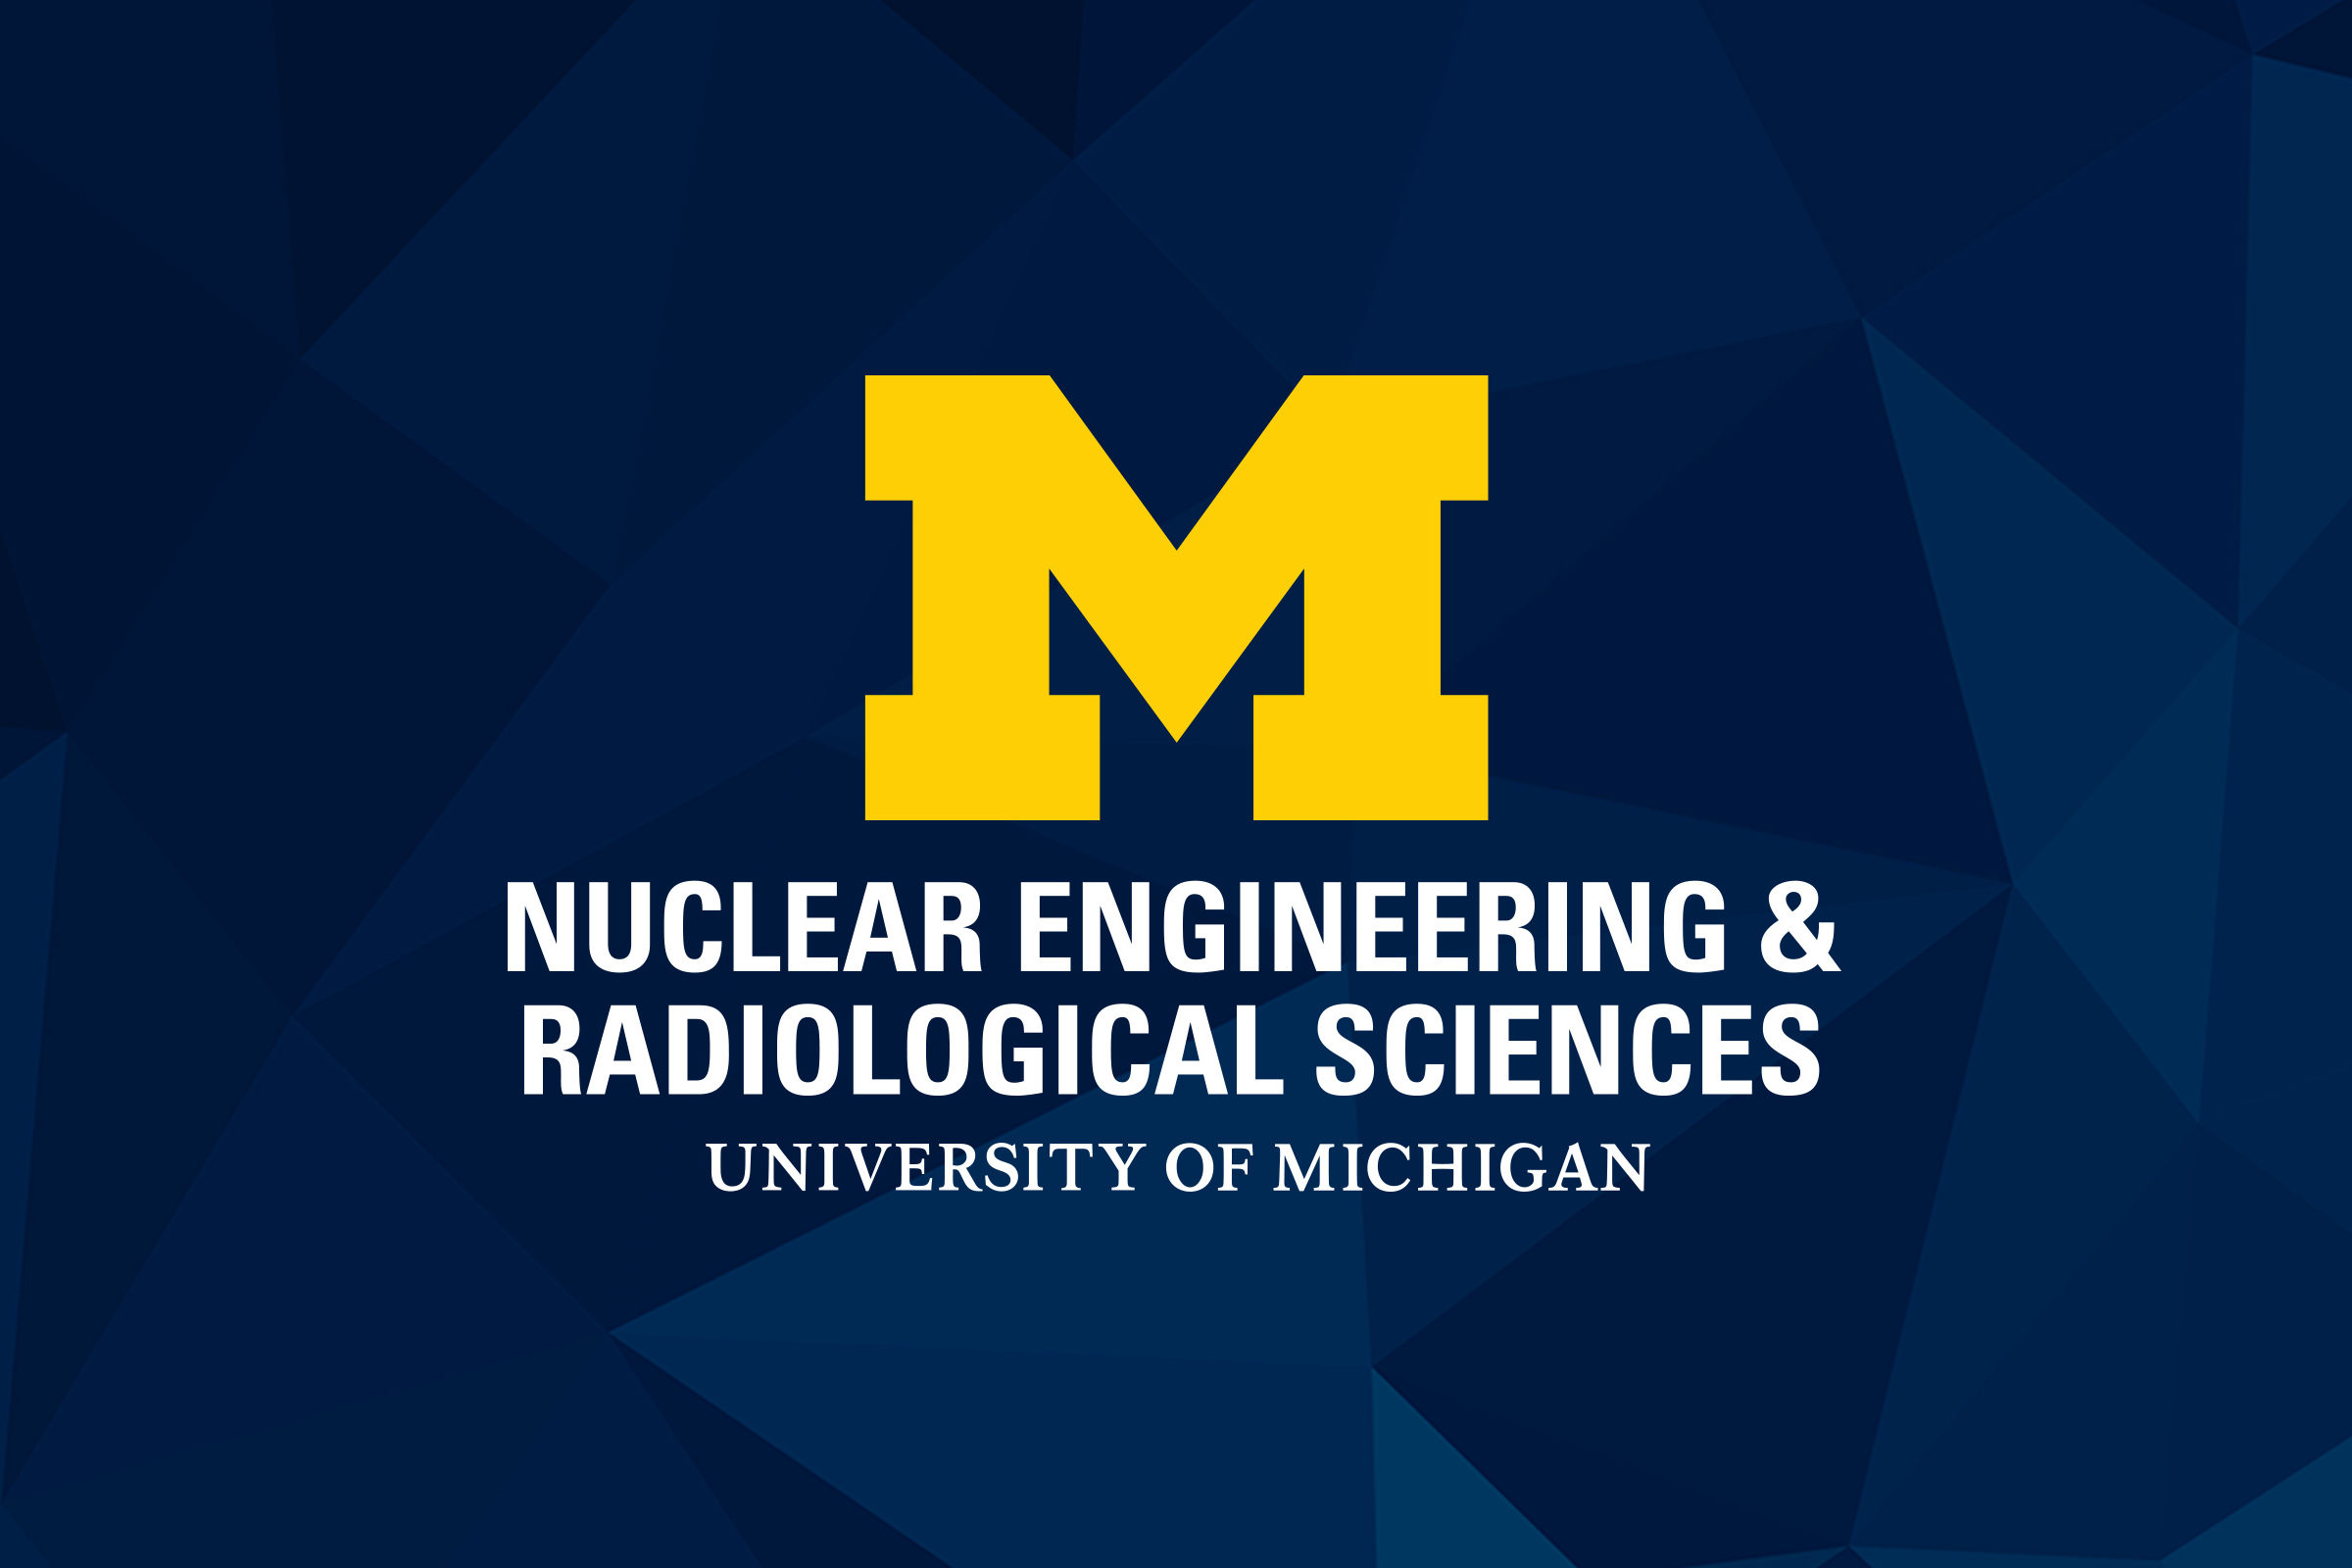 Nuclear Engineering & Radiological Sciences logo